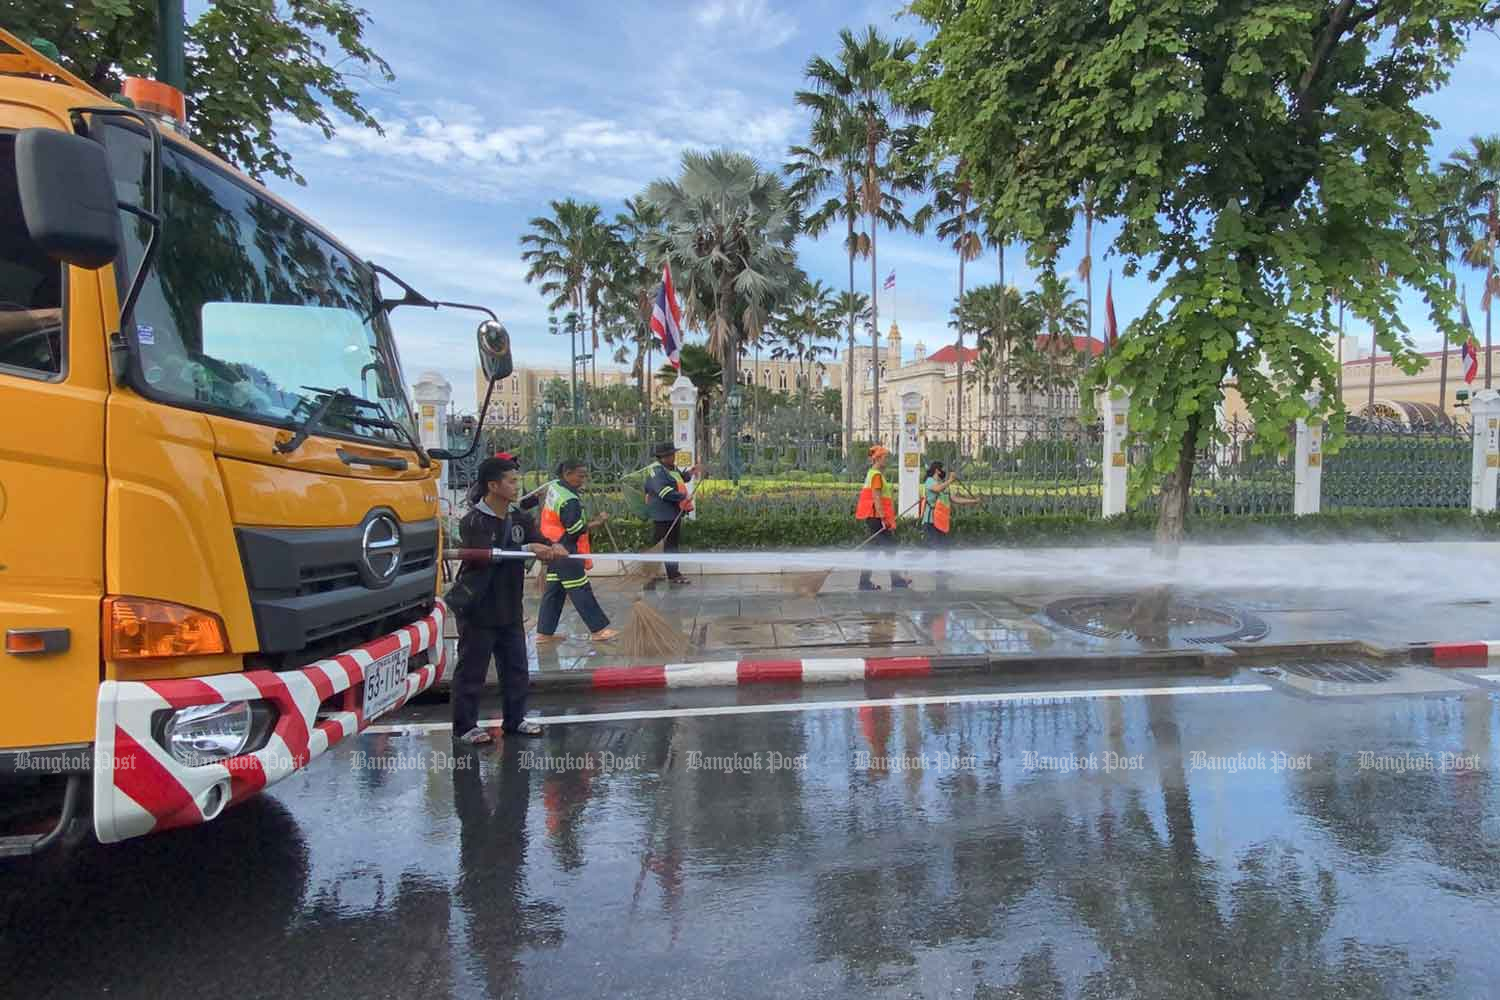 City Hall workers clean Phitsanulok and other roads outside Government House after the anti-government demonstration ended on Thursday. (Photo by Nutthawat Wicheanbut)